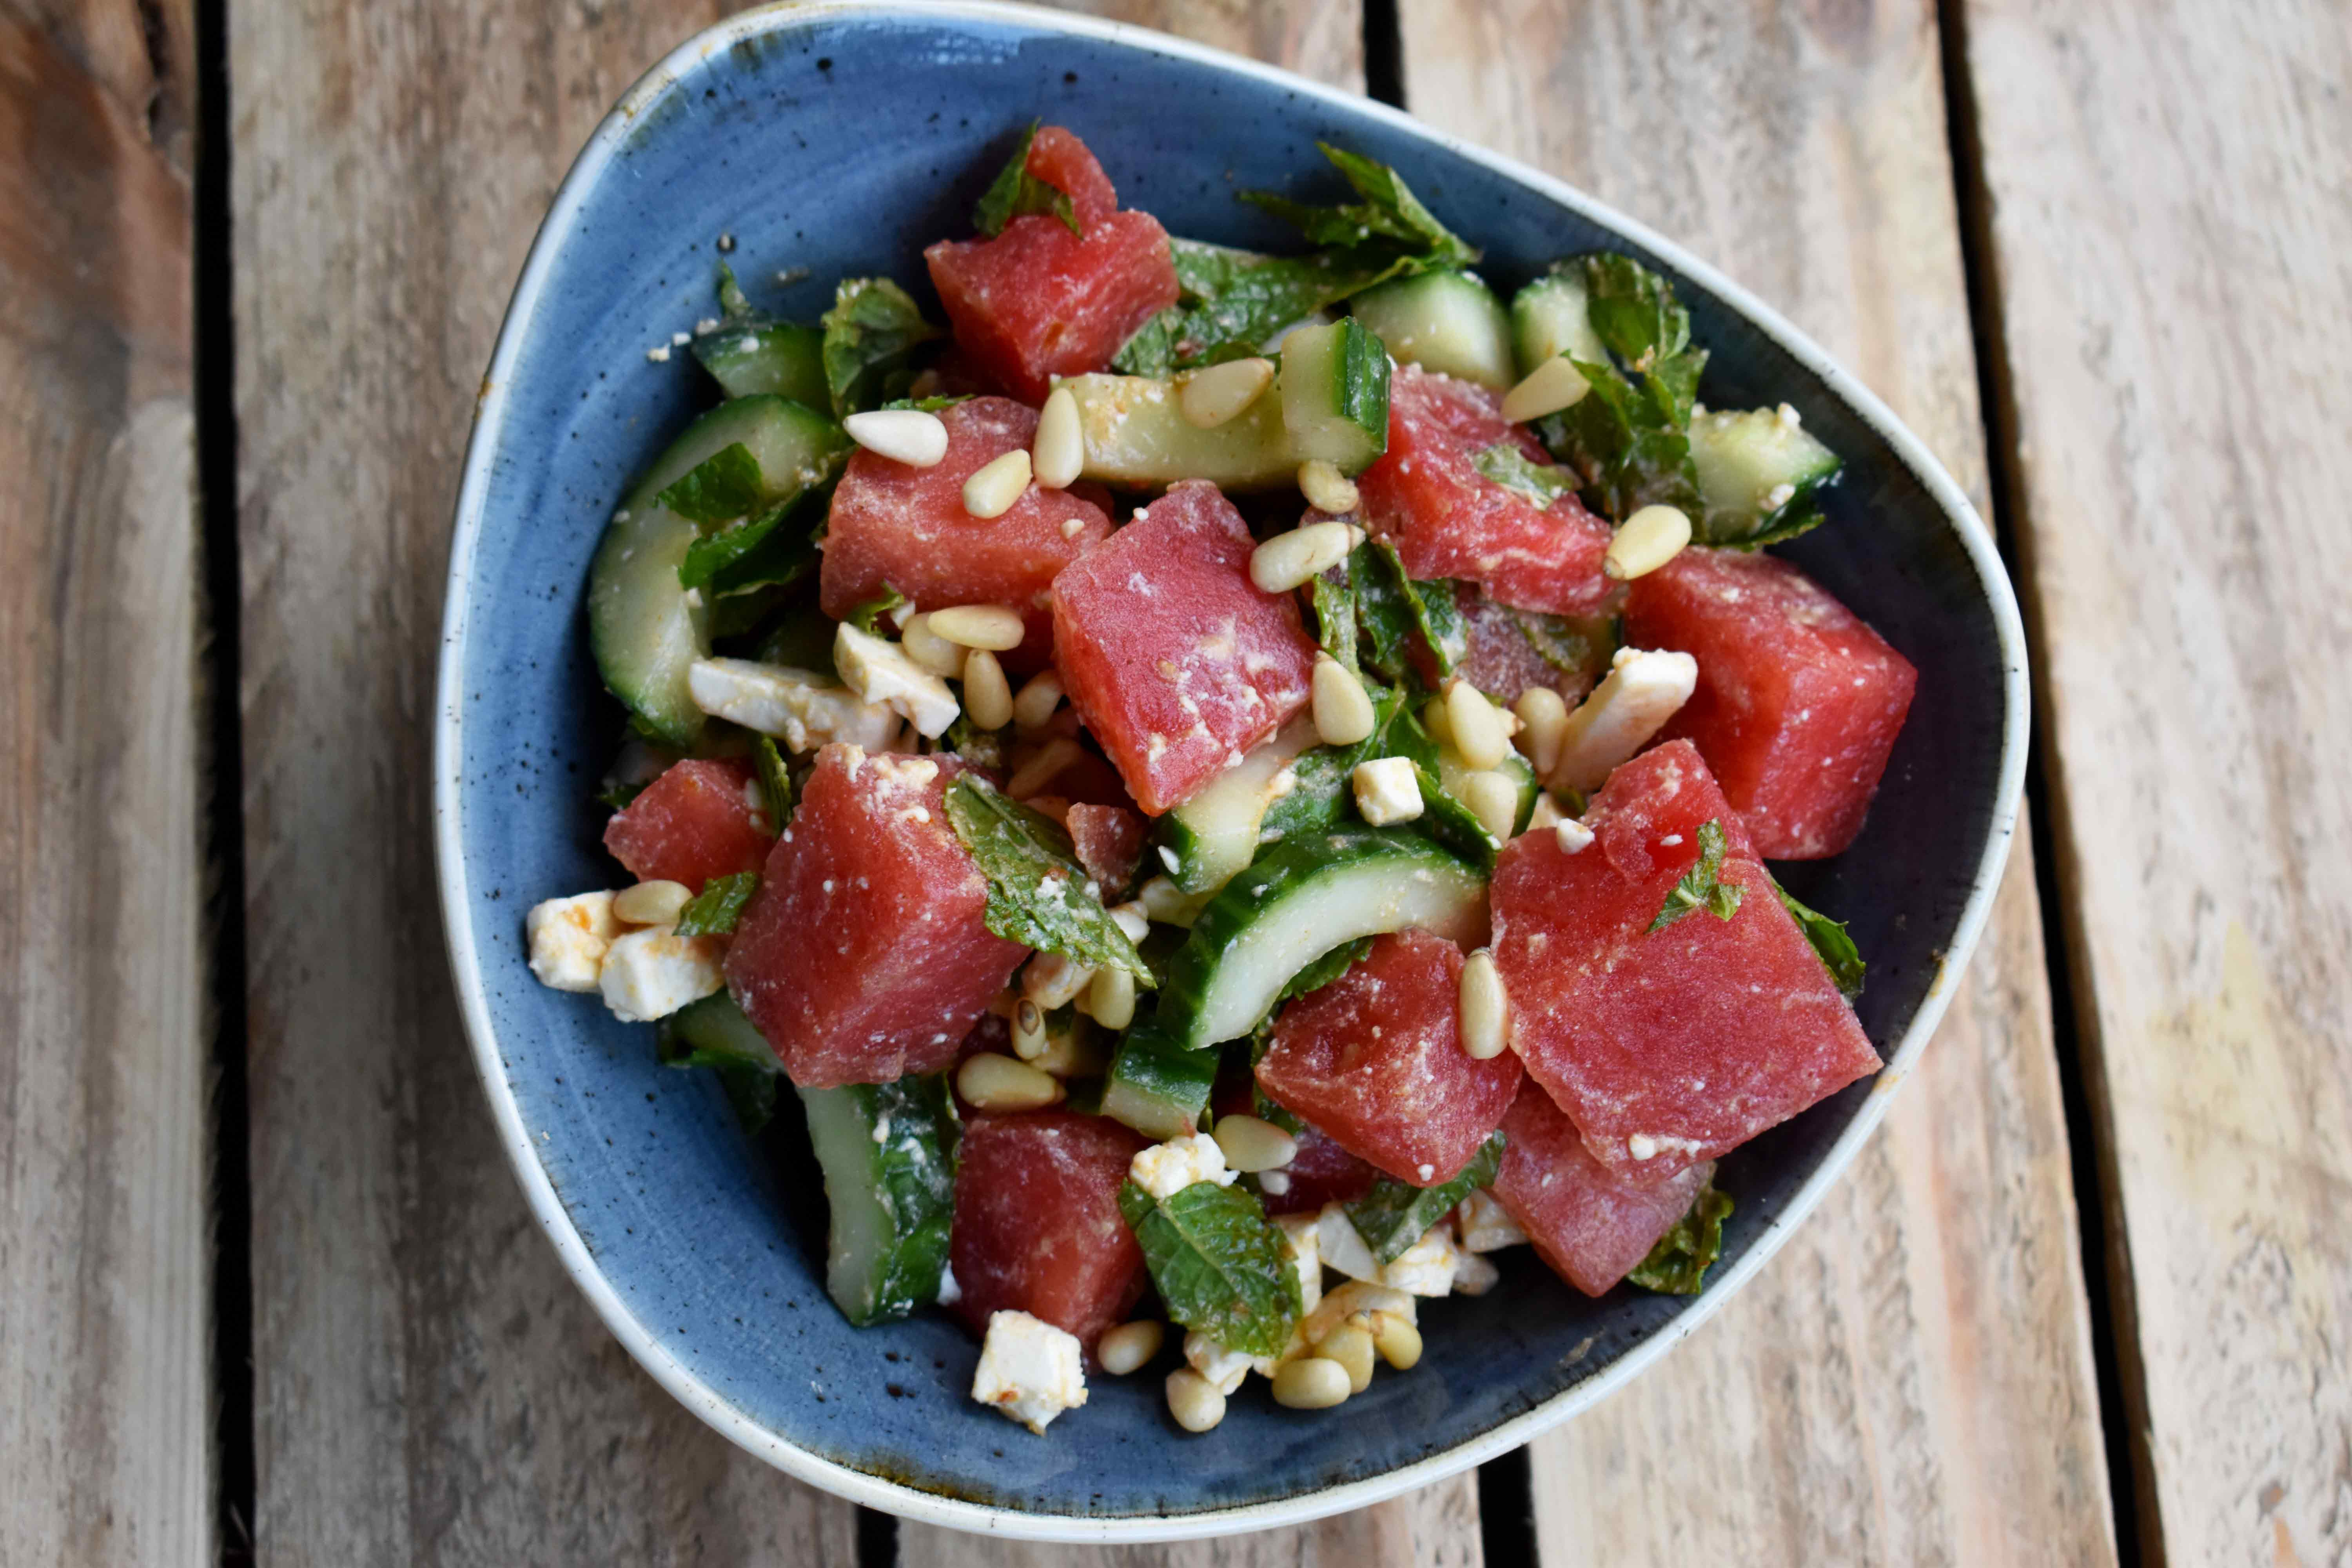 Cool Watermelon-Mint Salad (VGN)